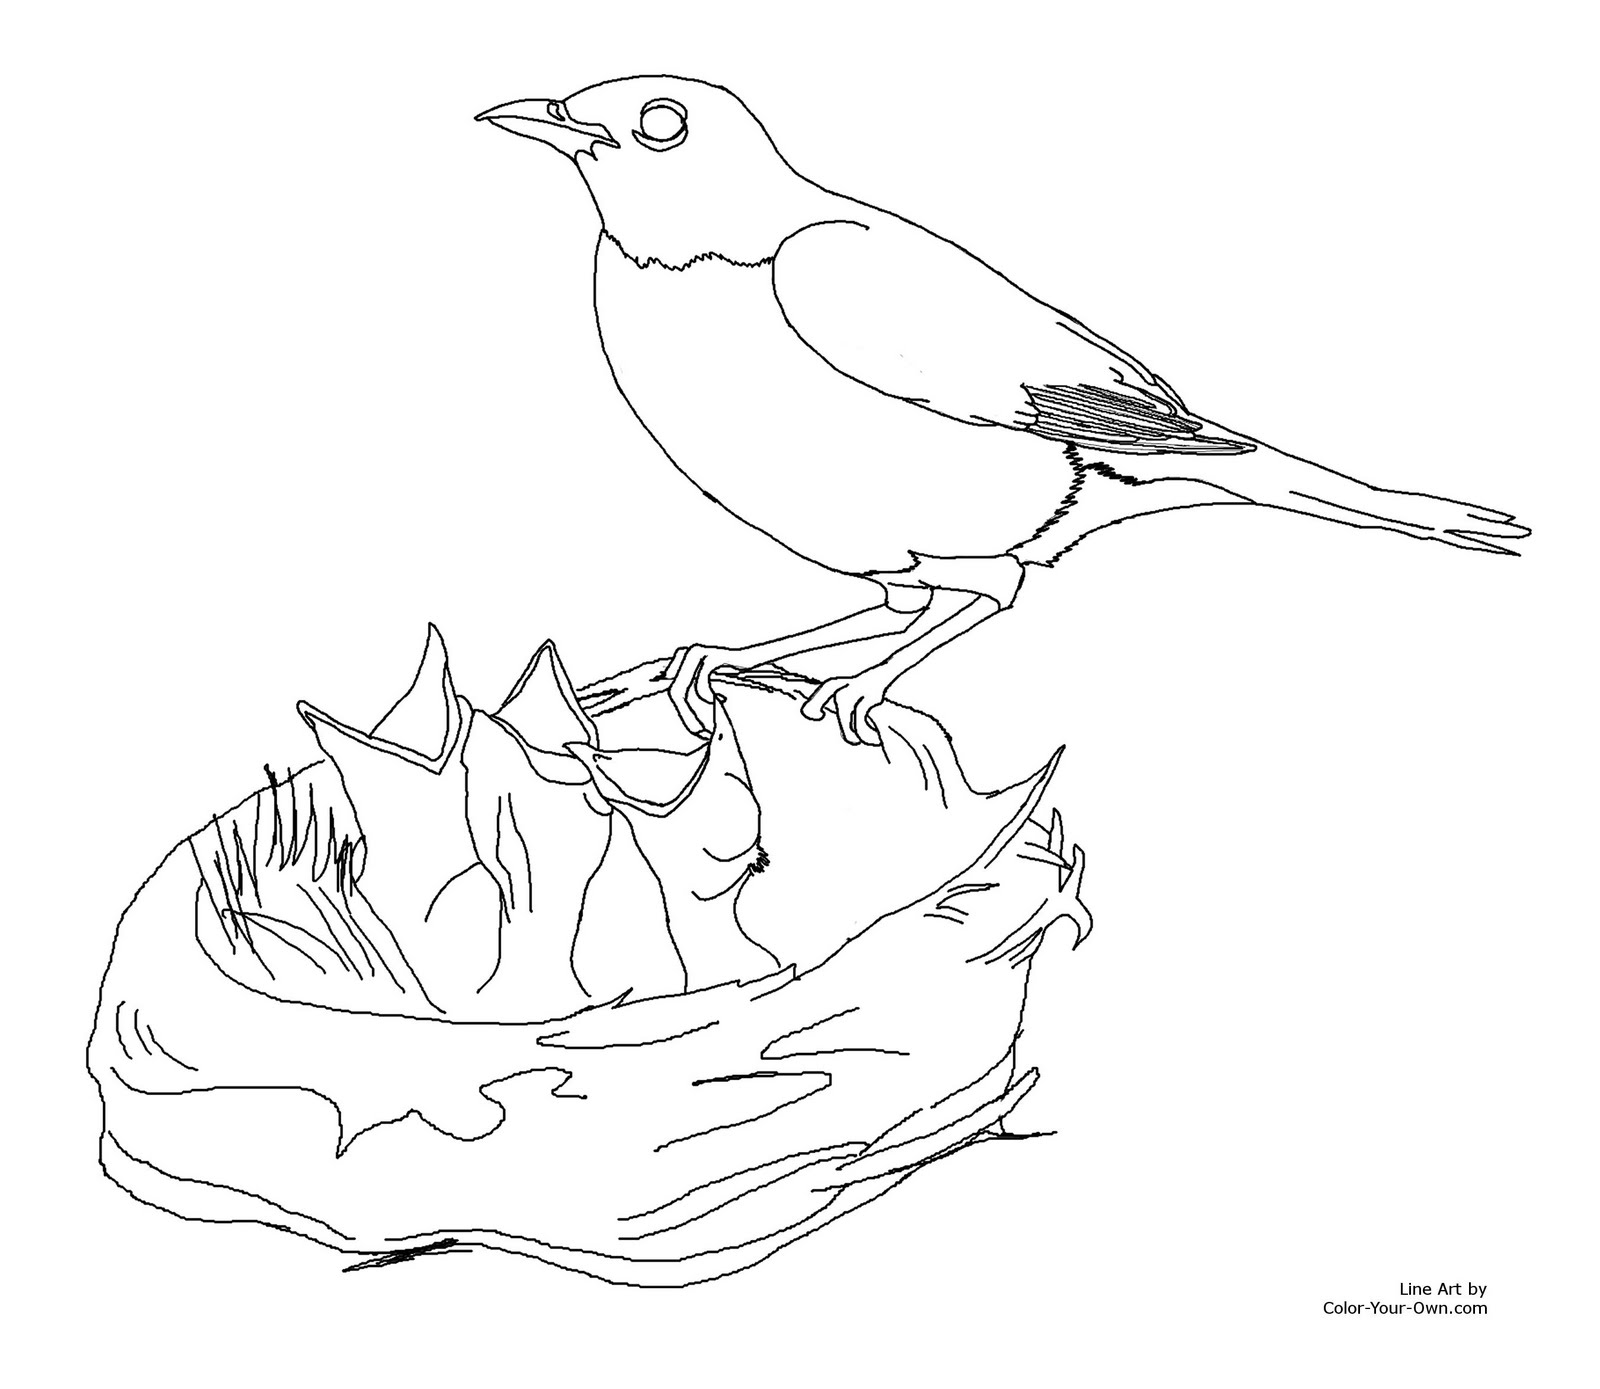 Drawing printout how to draw a bird nest - Baby Birds In Nest Drawing Photo 7